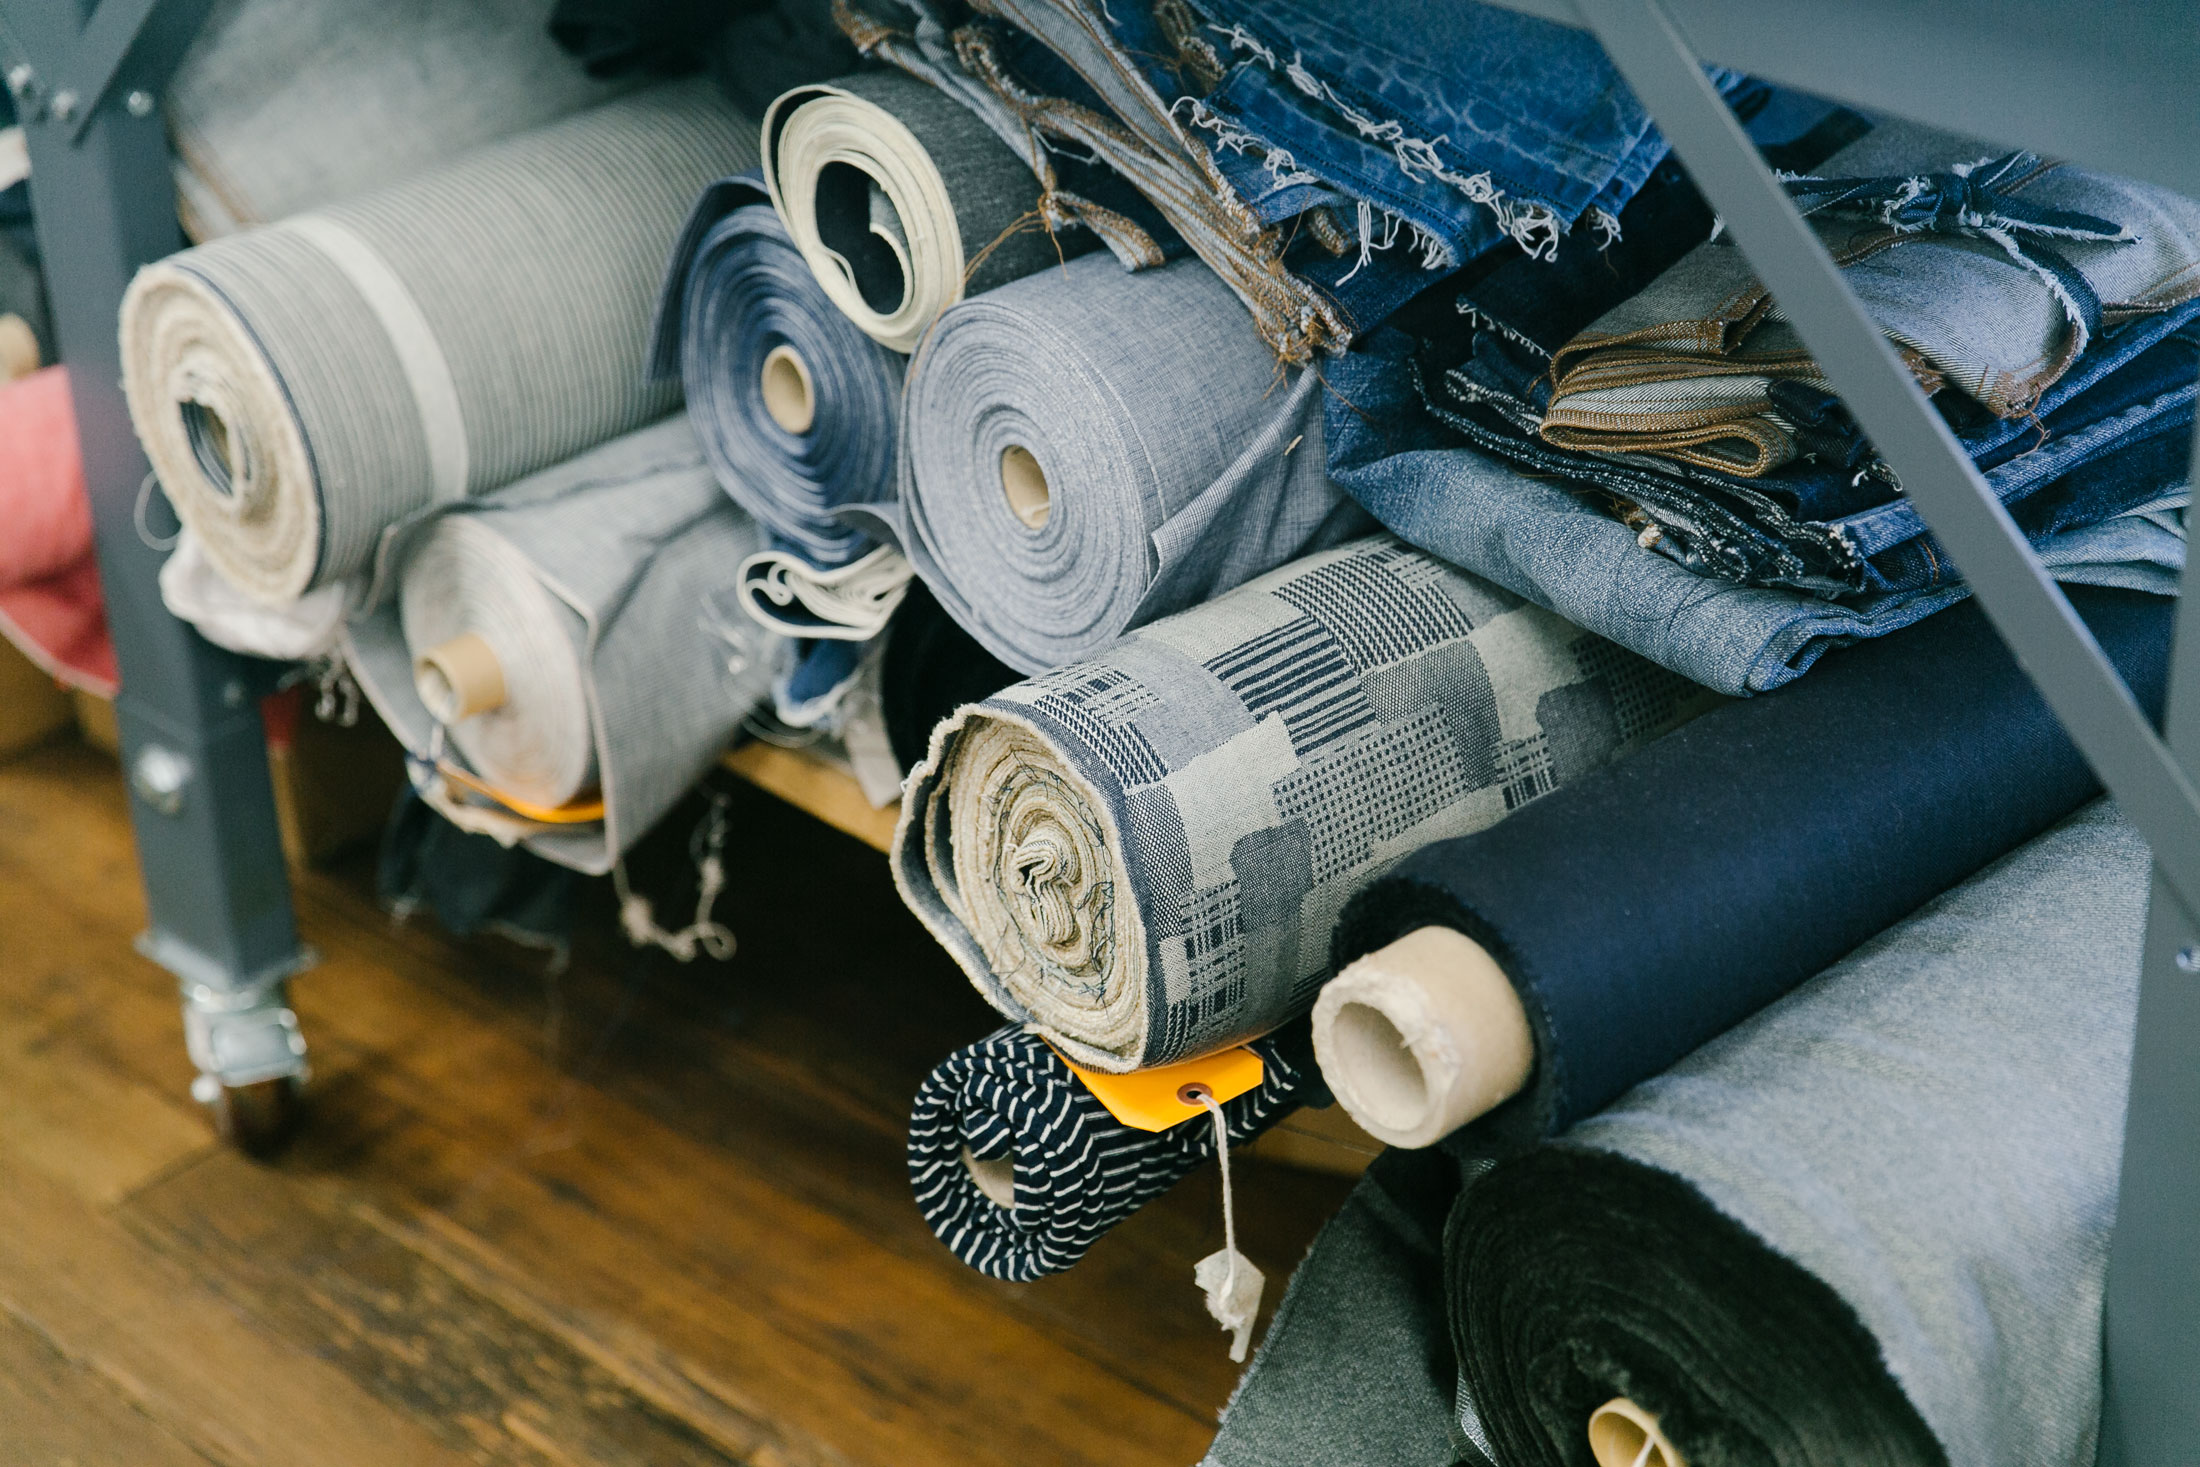 """Raw denim is sourced from around the globe (Italy Japan, Turkey, and the U.S.). """"We use the best fabrics,"""" Pierson says. """"When Madewell relaunched denim [in 2013], the non-negotiable was the fabric."""" (Photo: Angi Welsch/Surface)"""